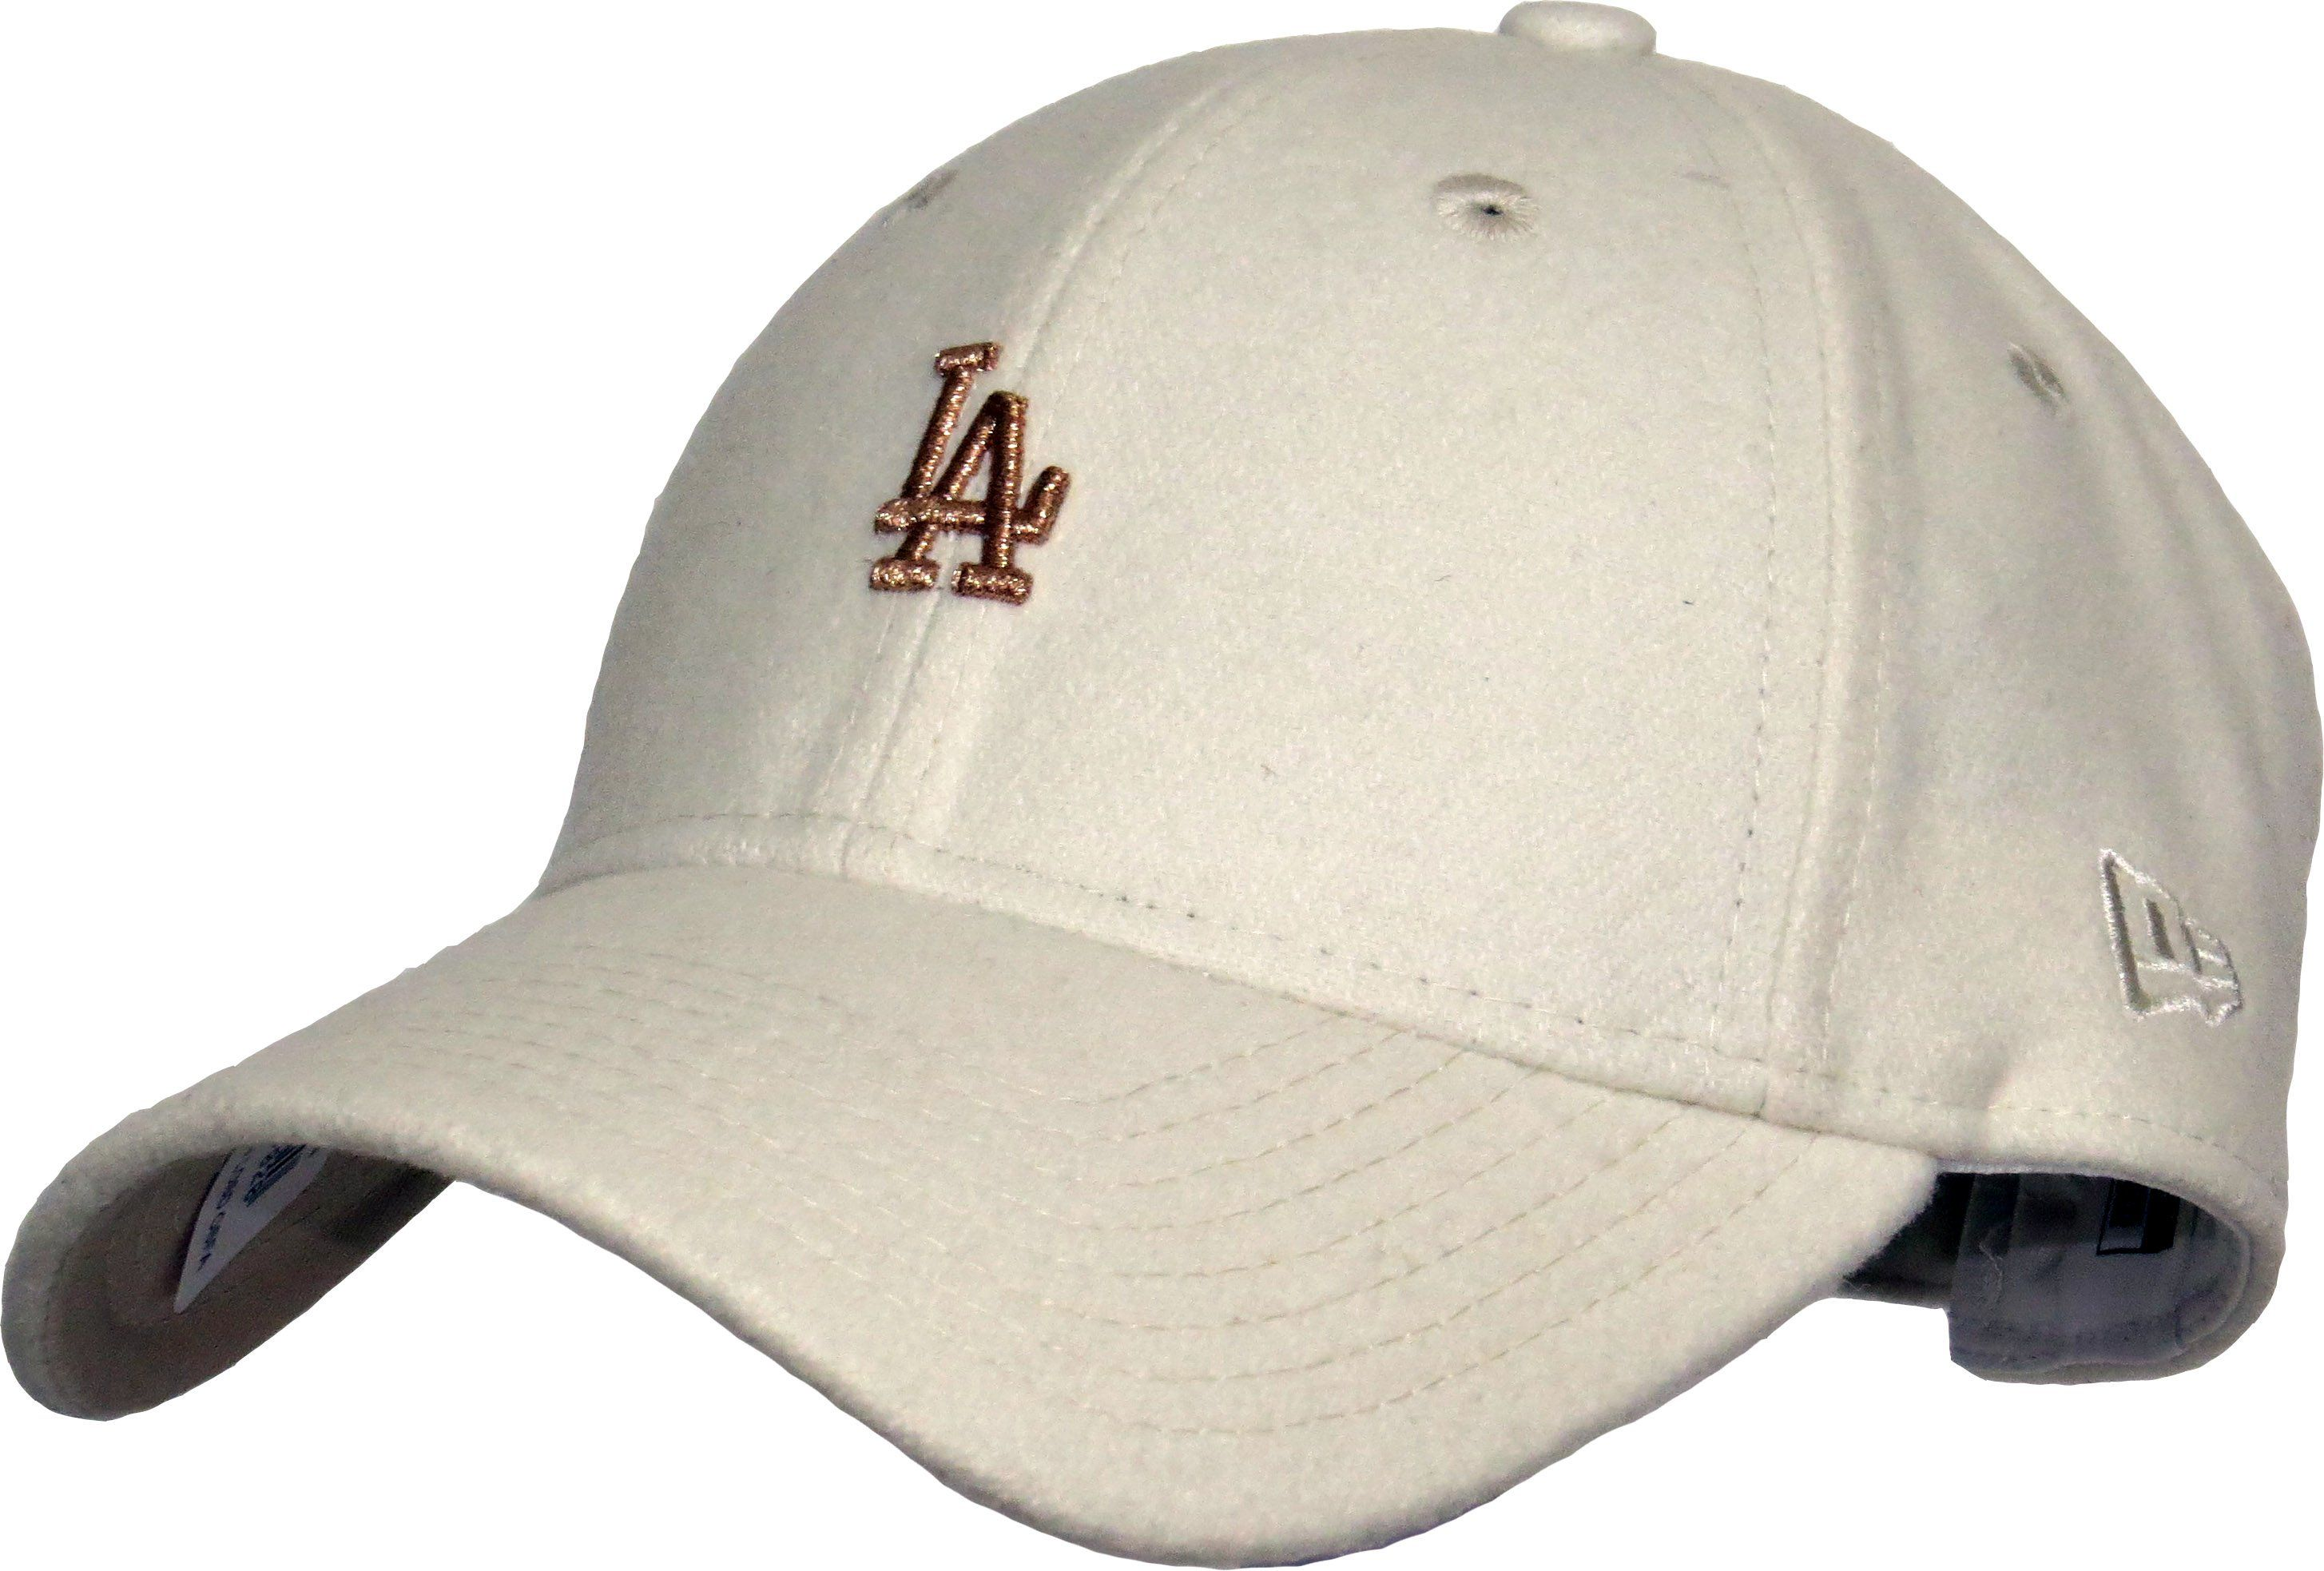 9ac76924af1 New Era 9Forty Womens Melton Wool Baseball Cap. Cream coloured